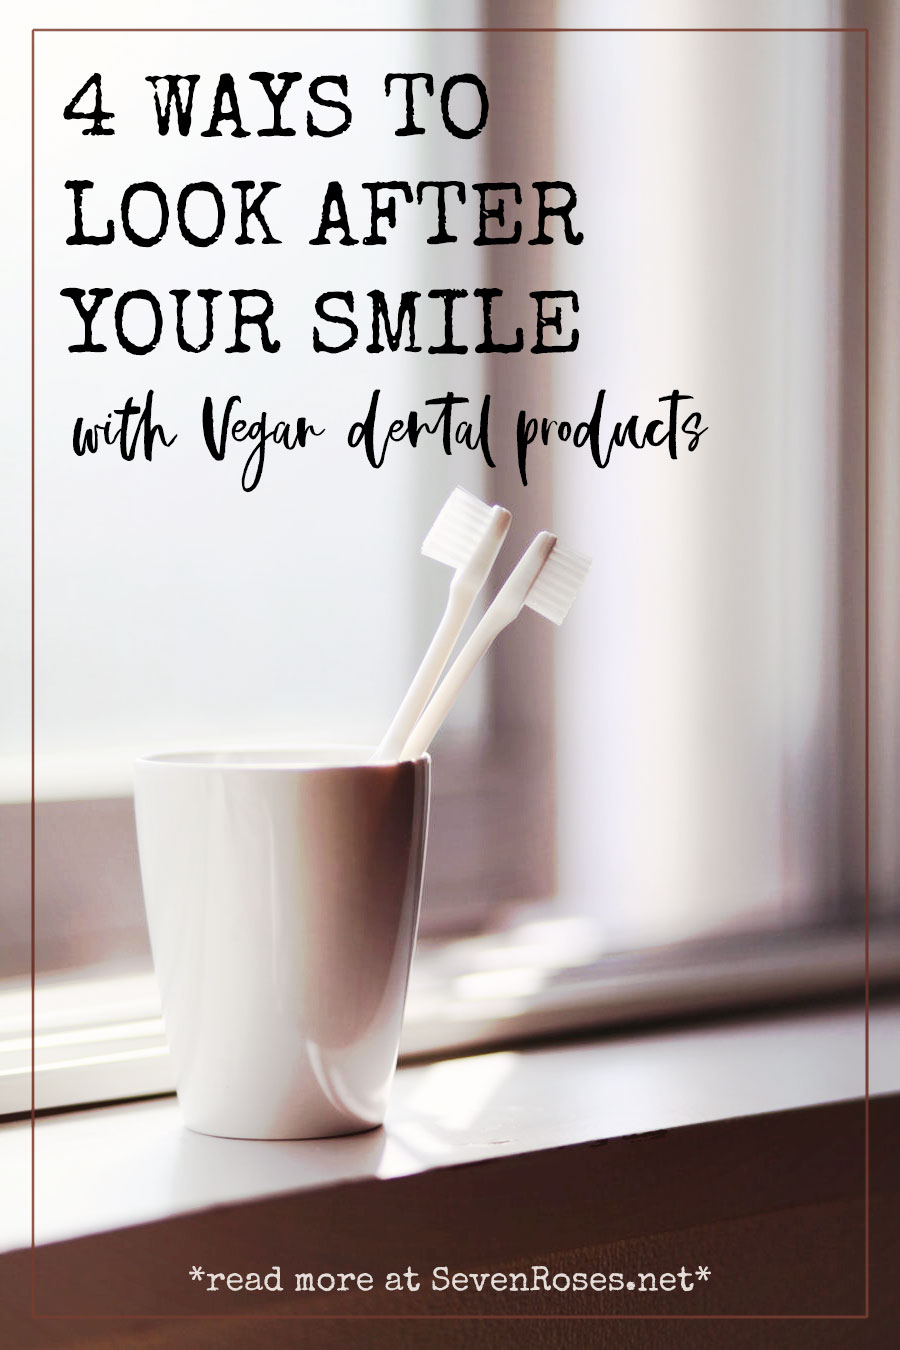 Vegan Dental Products